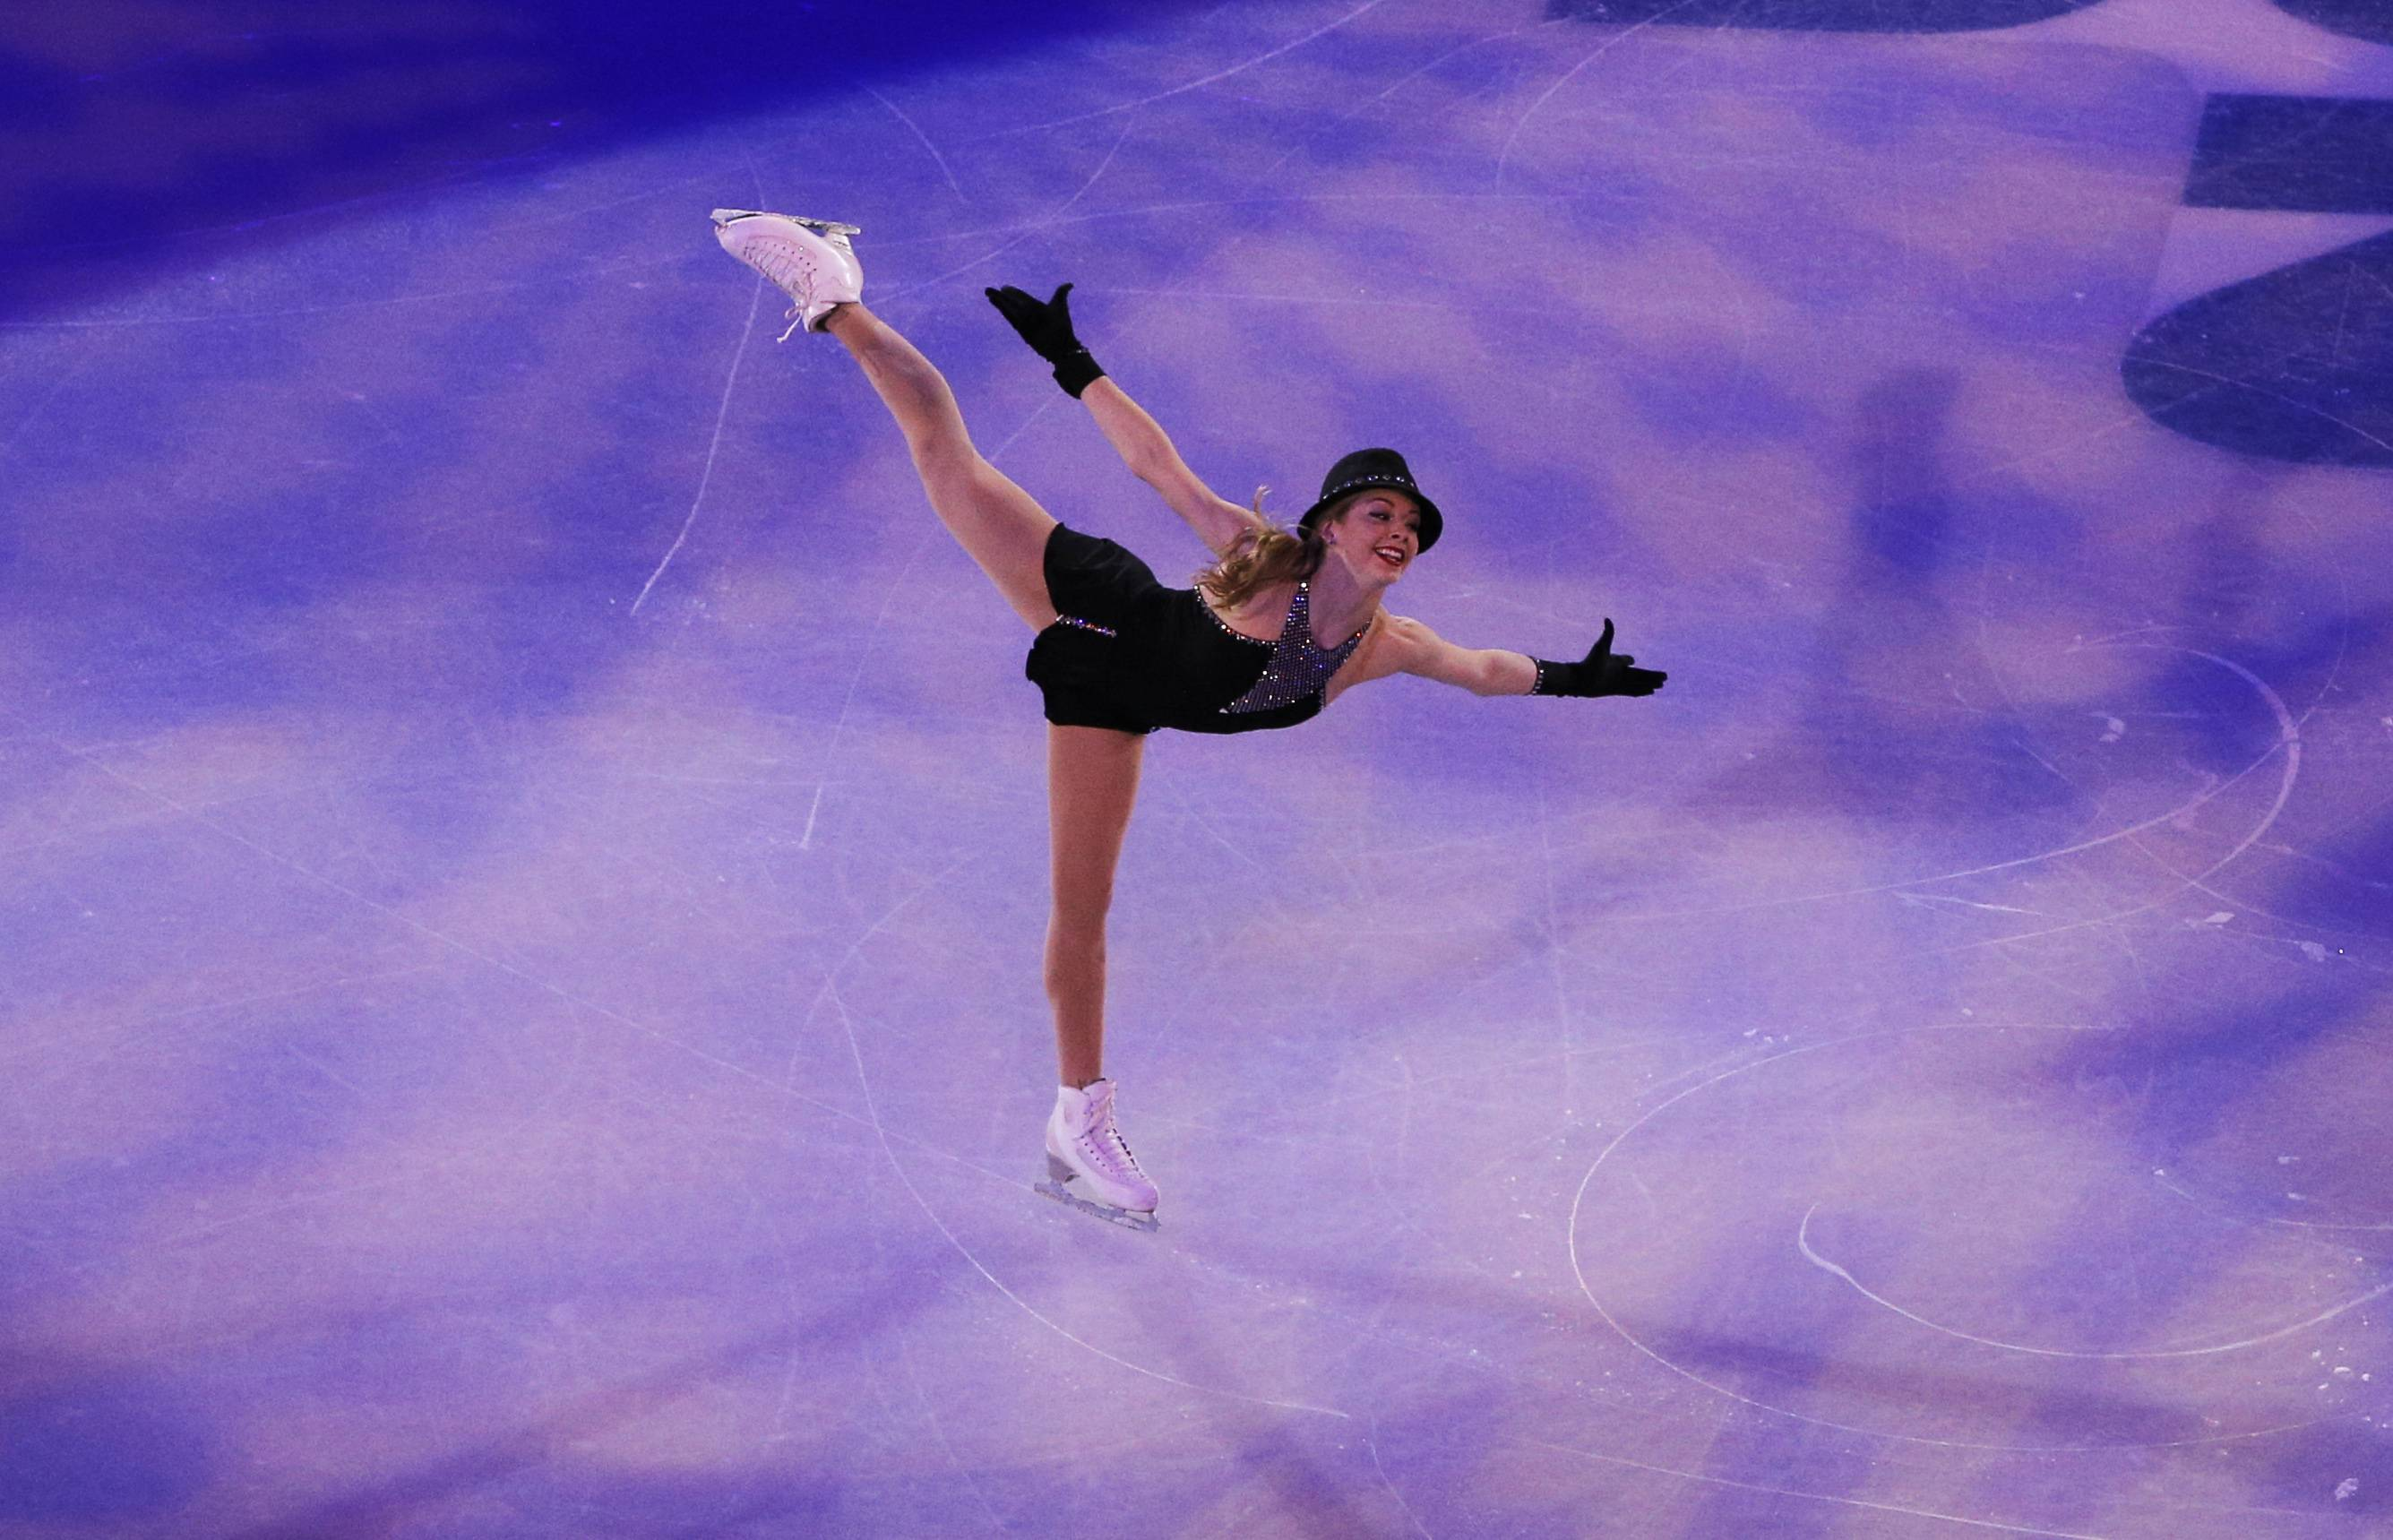 Gracie Gold of the United States performs during the figure skating exhibition gala at the Iceberg Skating Palace during the 2014 Winter Olympics, Saturday, Feb. 22, 2014, in Sochi, Russia.